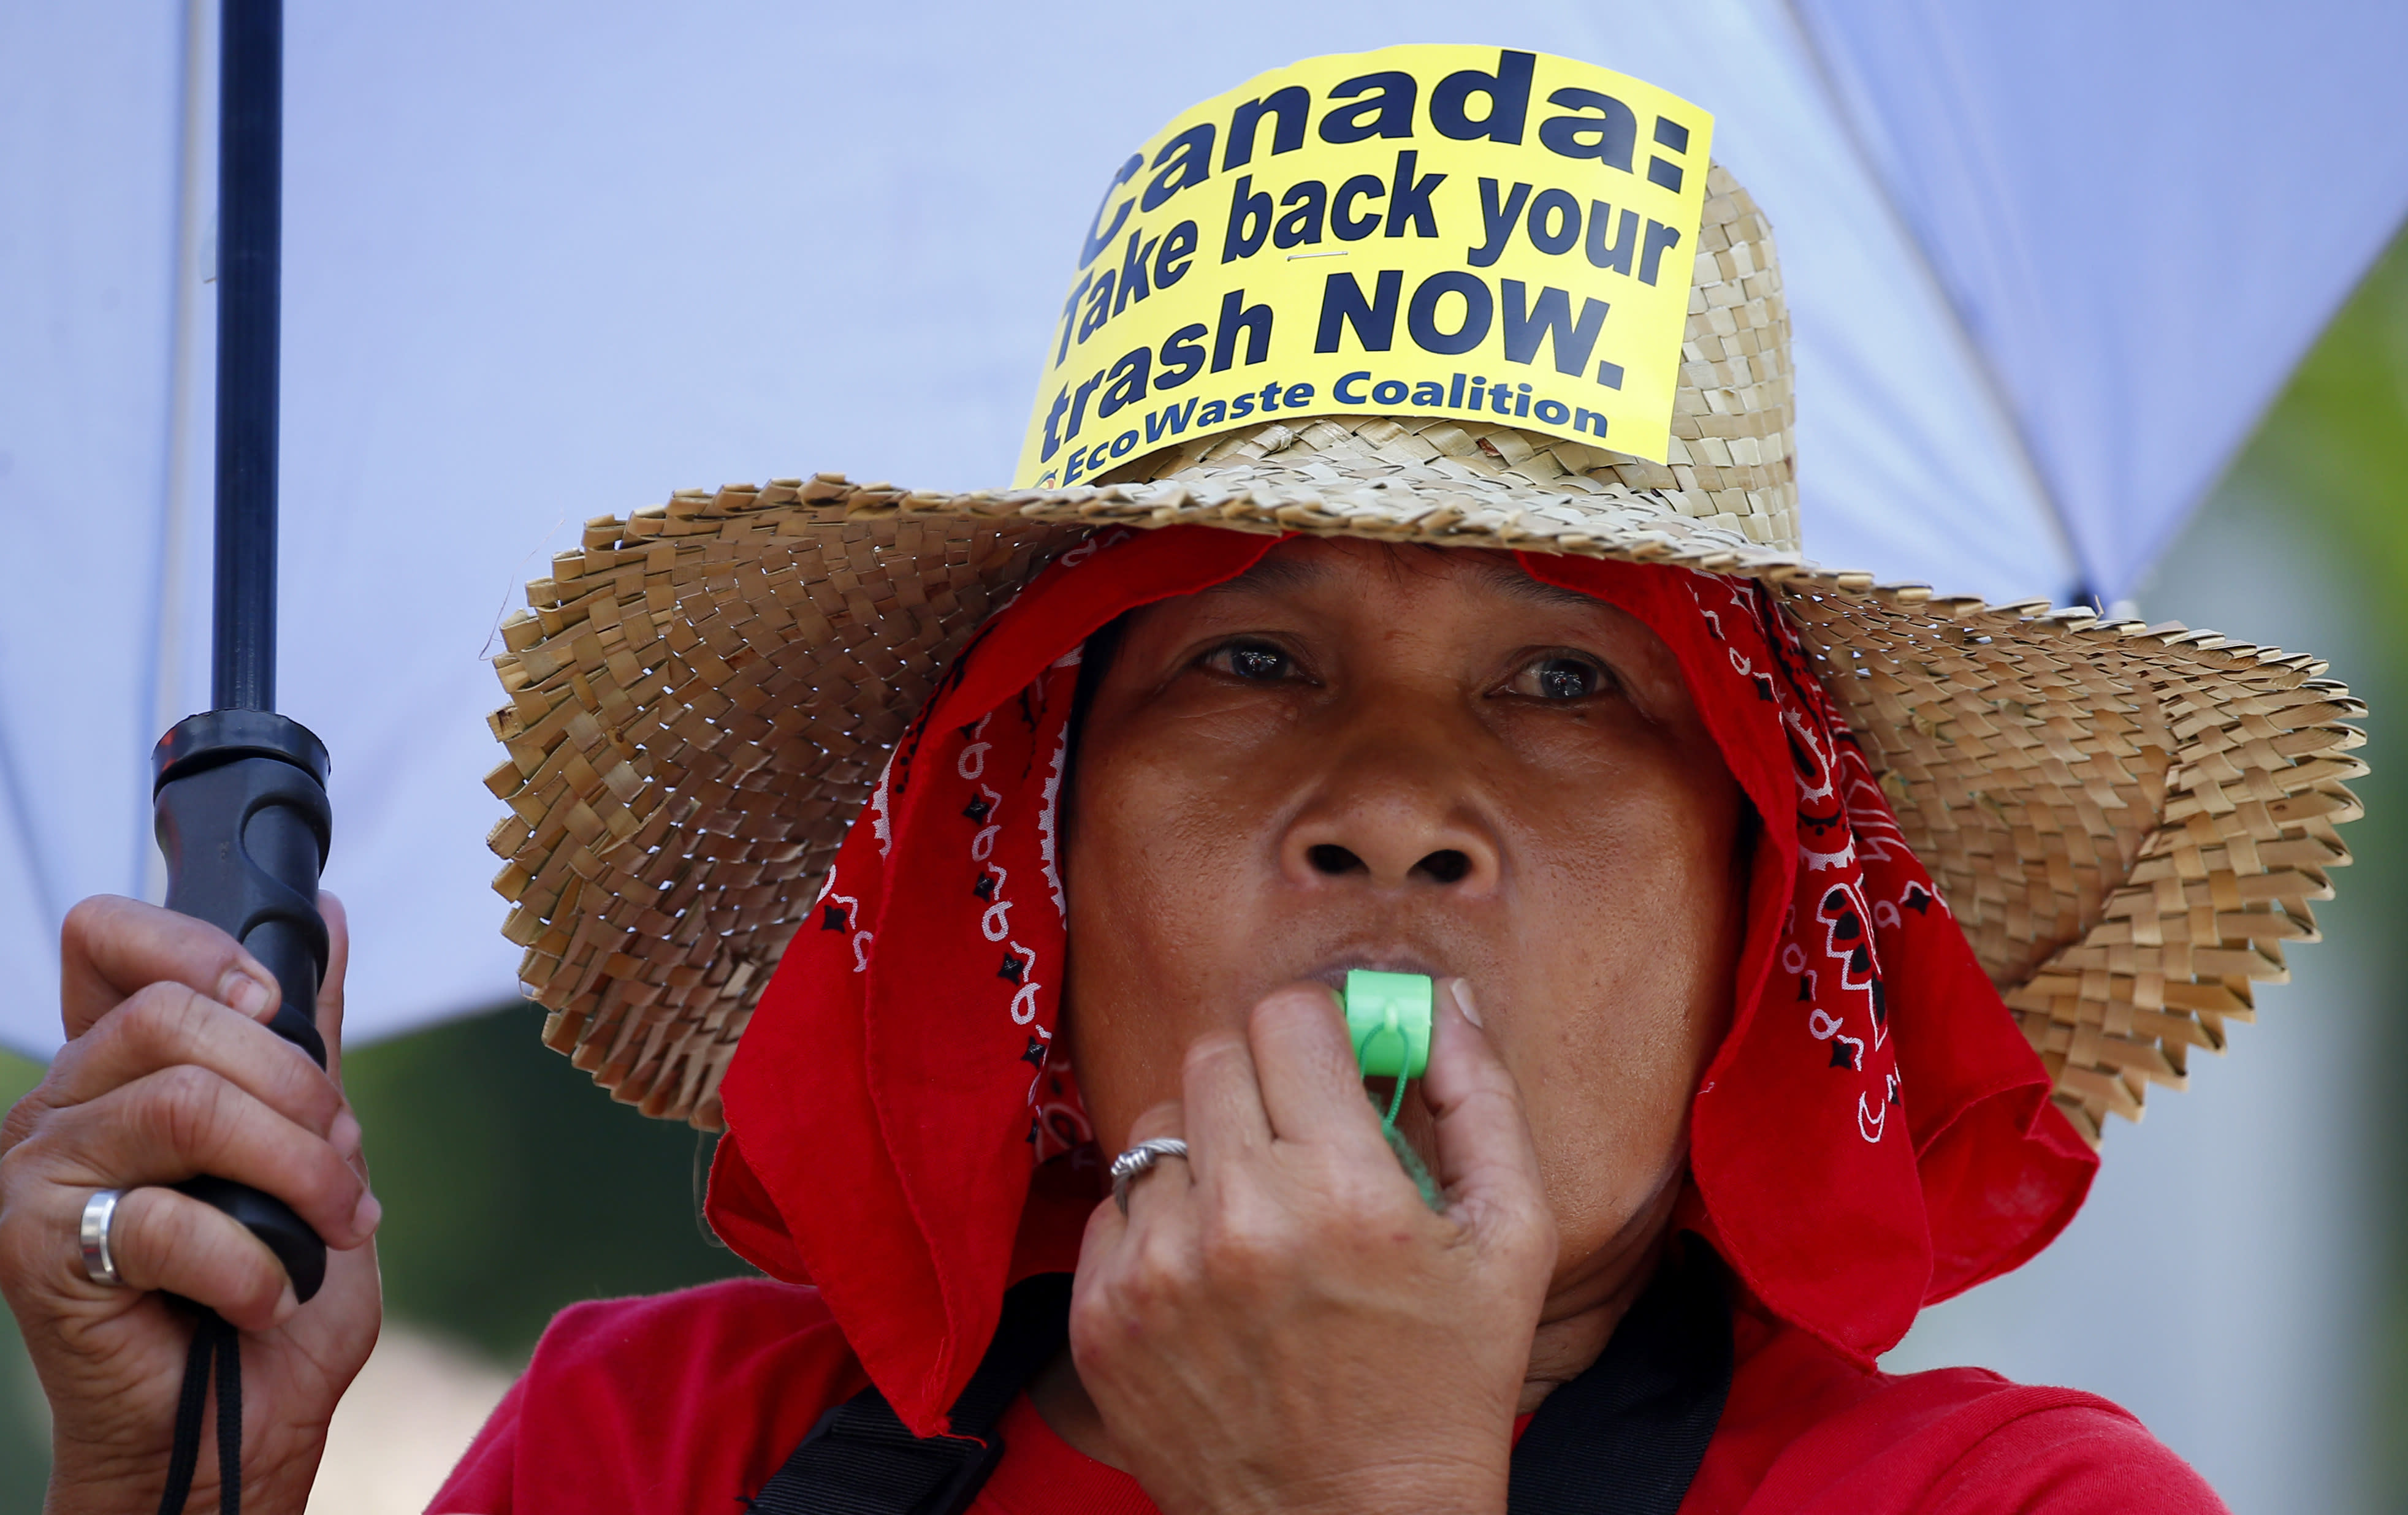 An environmentalist blows her whistle during a protest outside the Canadian Embassy to demand the Canadian government to speed up the removal of several containers of garbage that were shipped to the country Tuesday, May 21, 2019, in Manila, Philippines. The Philippines recalled its ambassador and consuls in Canada last week over Ottawa's failure to comply with a deadline to take back 69 containers of garbage that Filipino officials say were illegally shipped to the Philippines years ago. (AP Photo/Bullit Marquez)